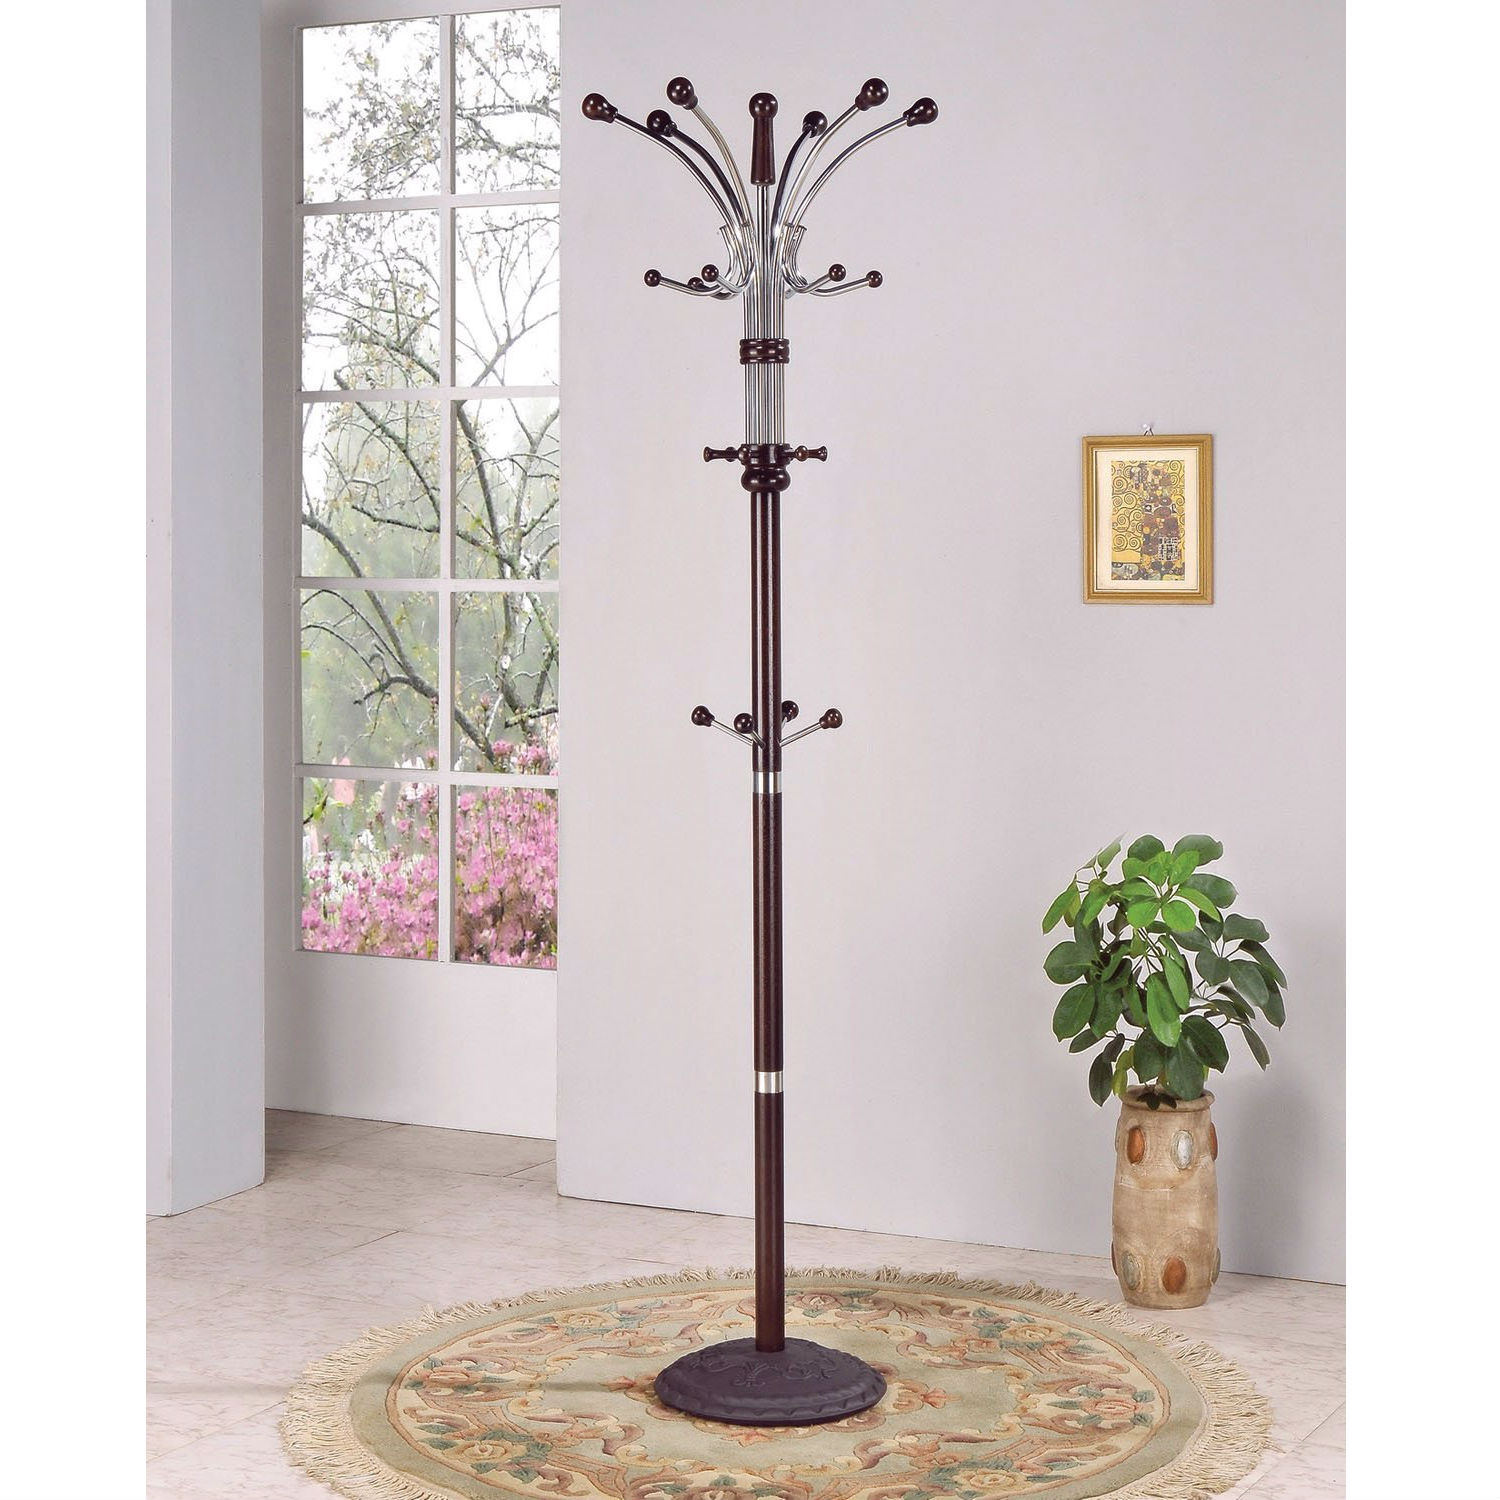 Wood and Metal Coat Rack Hat Stand with Hooks on Top and Middle, AHWM4972 :  This Wood and Metal Coat Rack Hat Stand with Hooks on Top and Middle comes in espresso finish. Features coat hooks on top and middle. Great and practical in use for any home and office. Made of iron tube and 43-mm wooden material. Some assembly may be required. Made in Taiwan. This product weighs 20-pound. Measures 14-inch length by 14-inch width by 74-inch height.